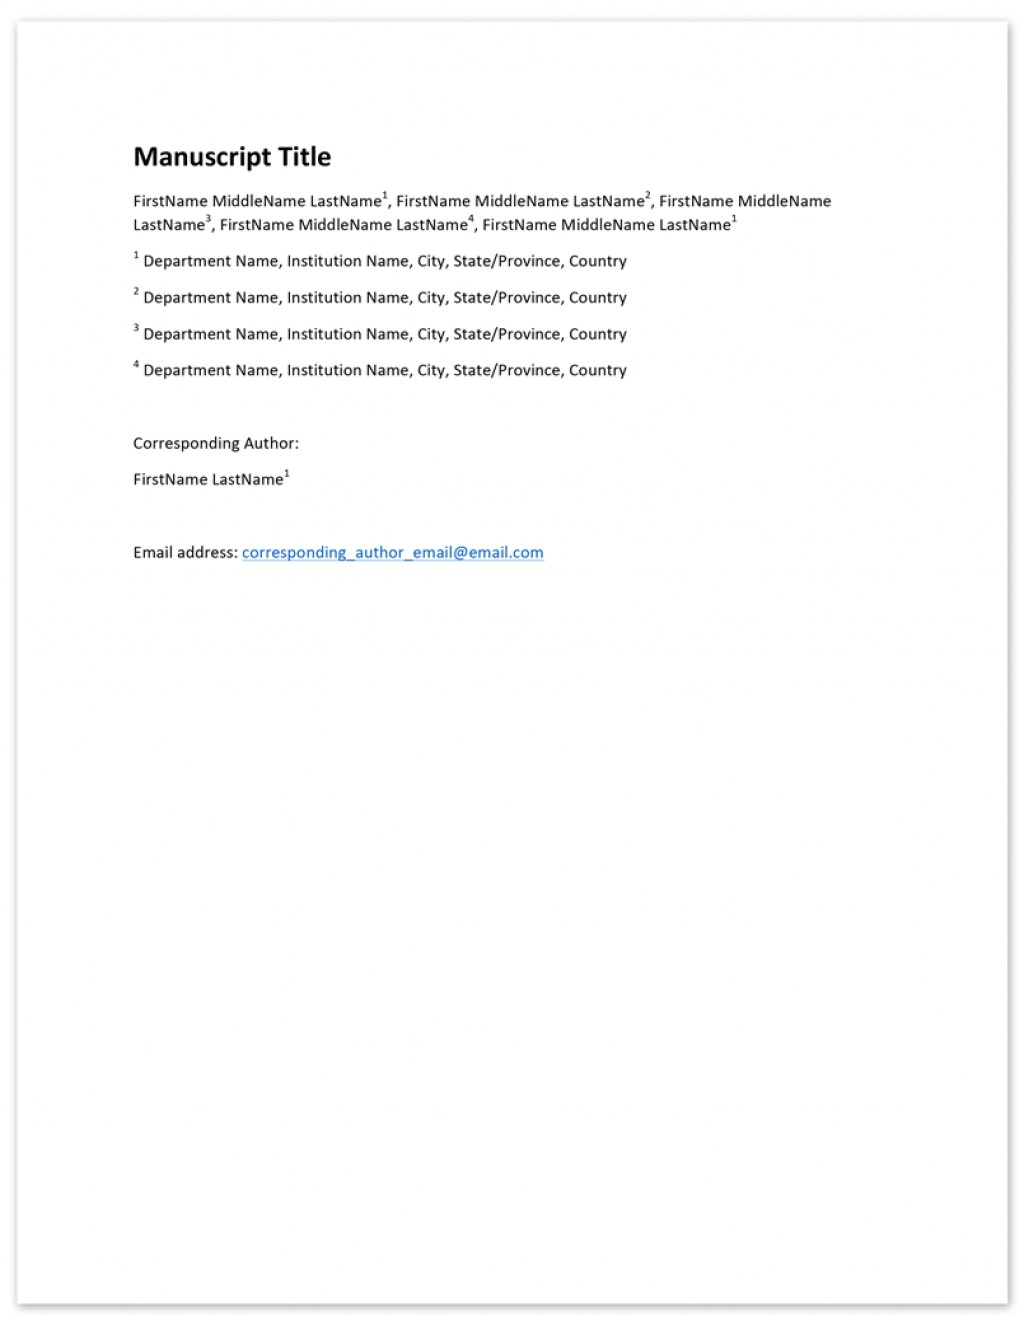 009 Author Cover Page Template V2 Citing Research Paper With Multiple Excellent Authors Large